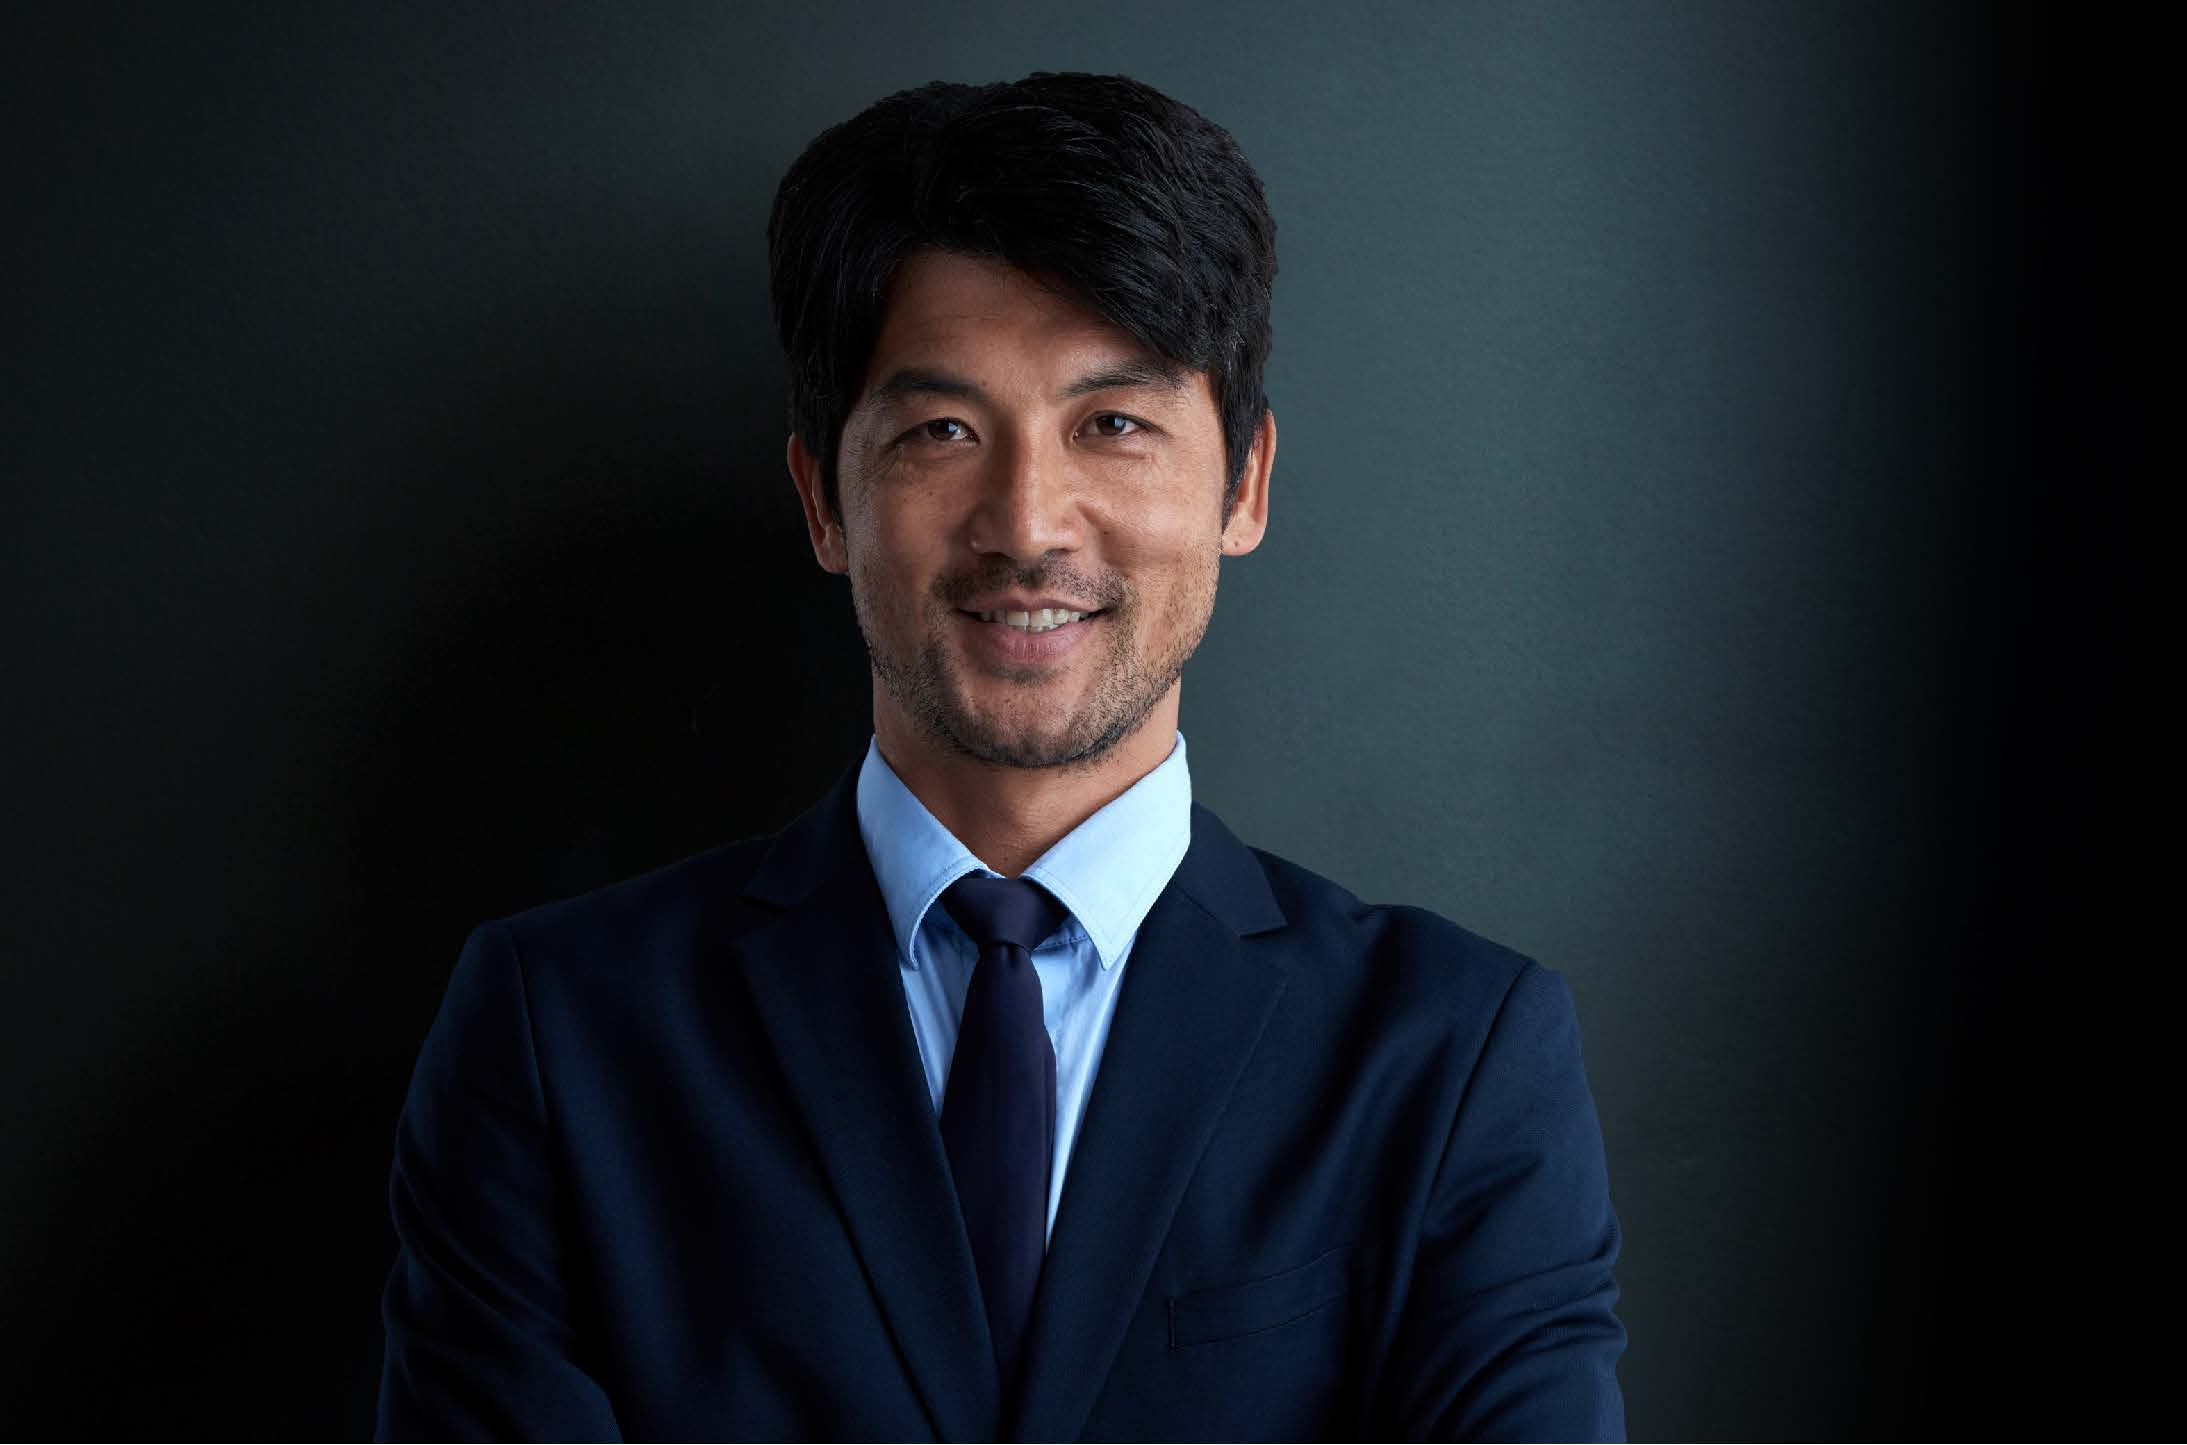 Asian man in business suit welcoming a conversation